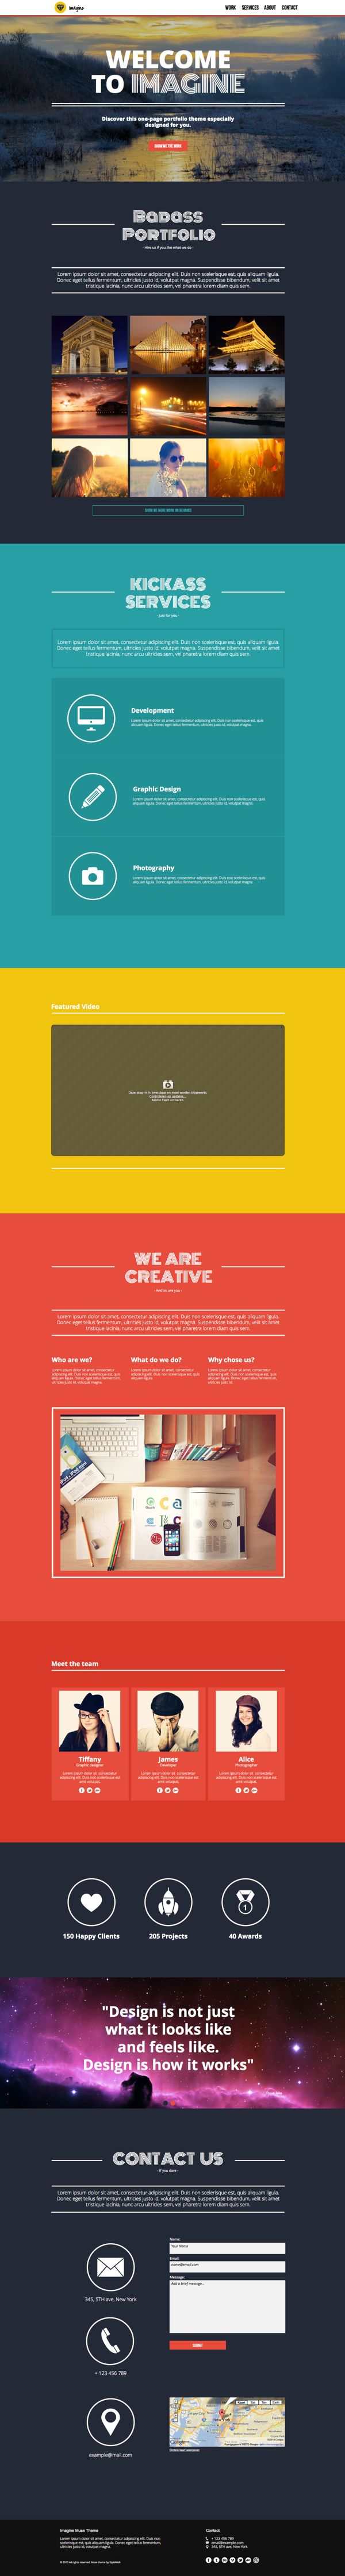 Imagine - One Page Muse Theme by styleWish, via Behance